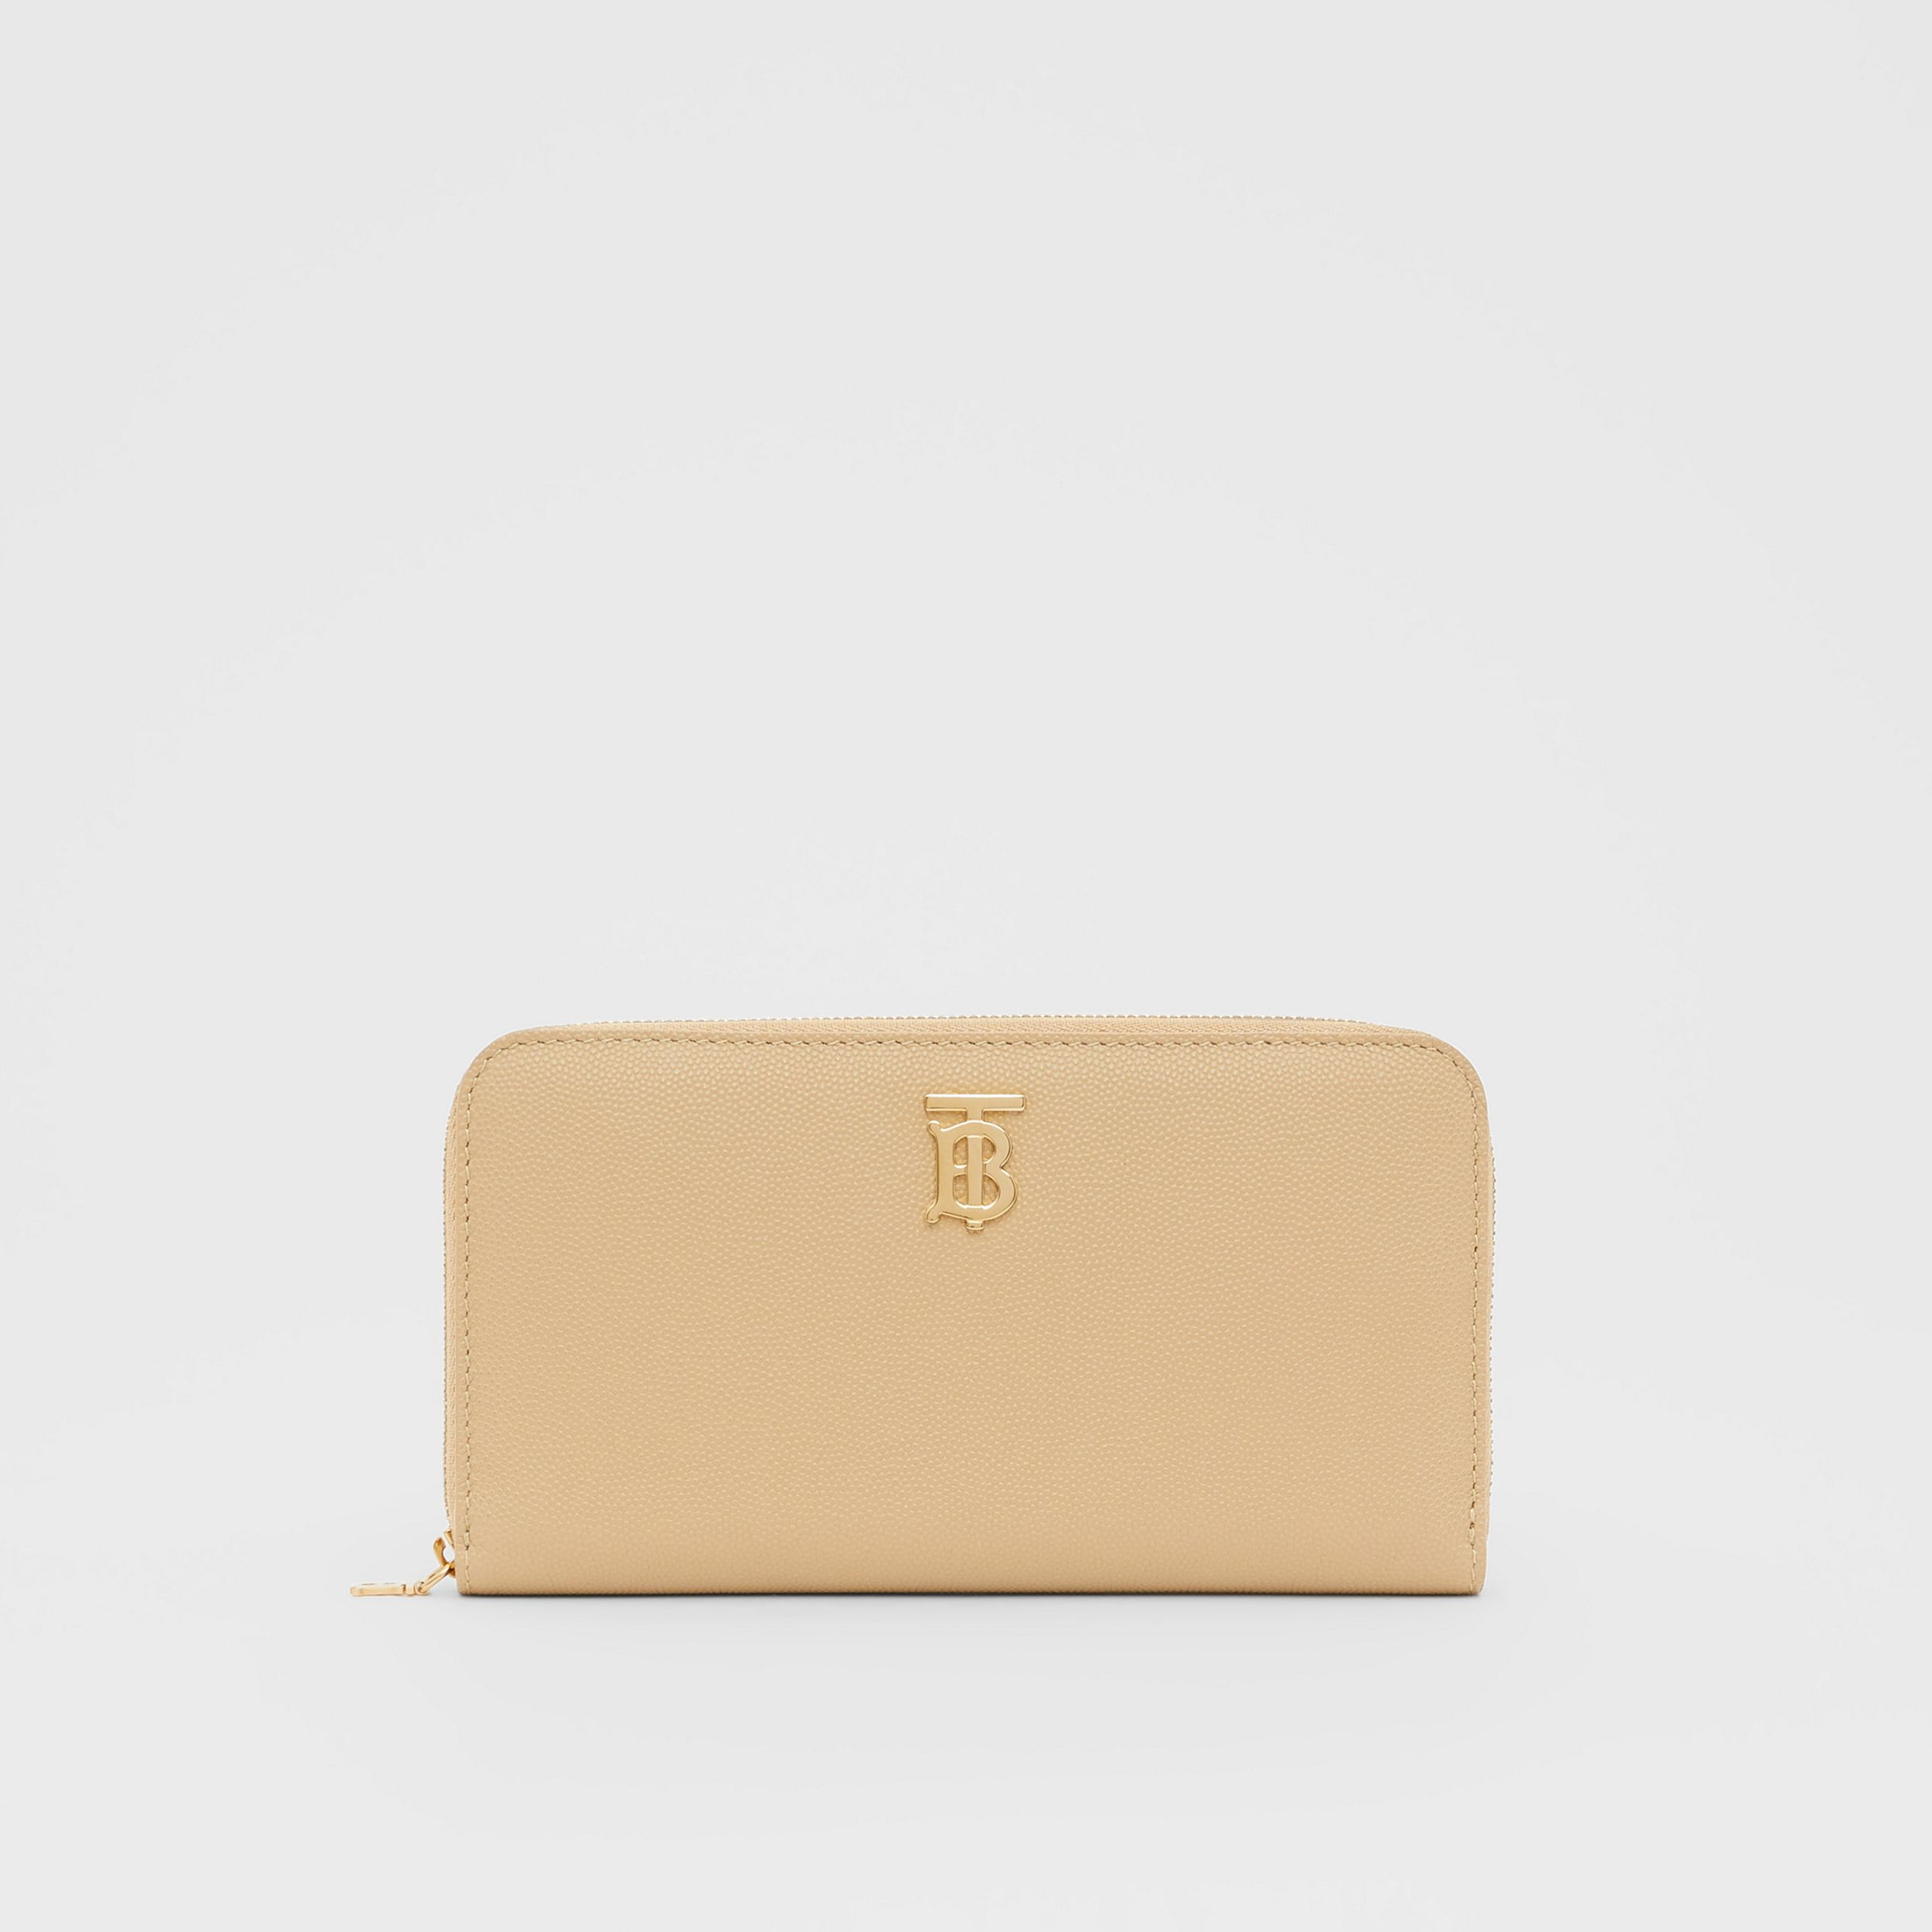 Monogram Motif Grainy Leather Ziparound Wallet in Archive Beige - Women | Burberry Hong Kong S.A.R. - 1